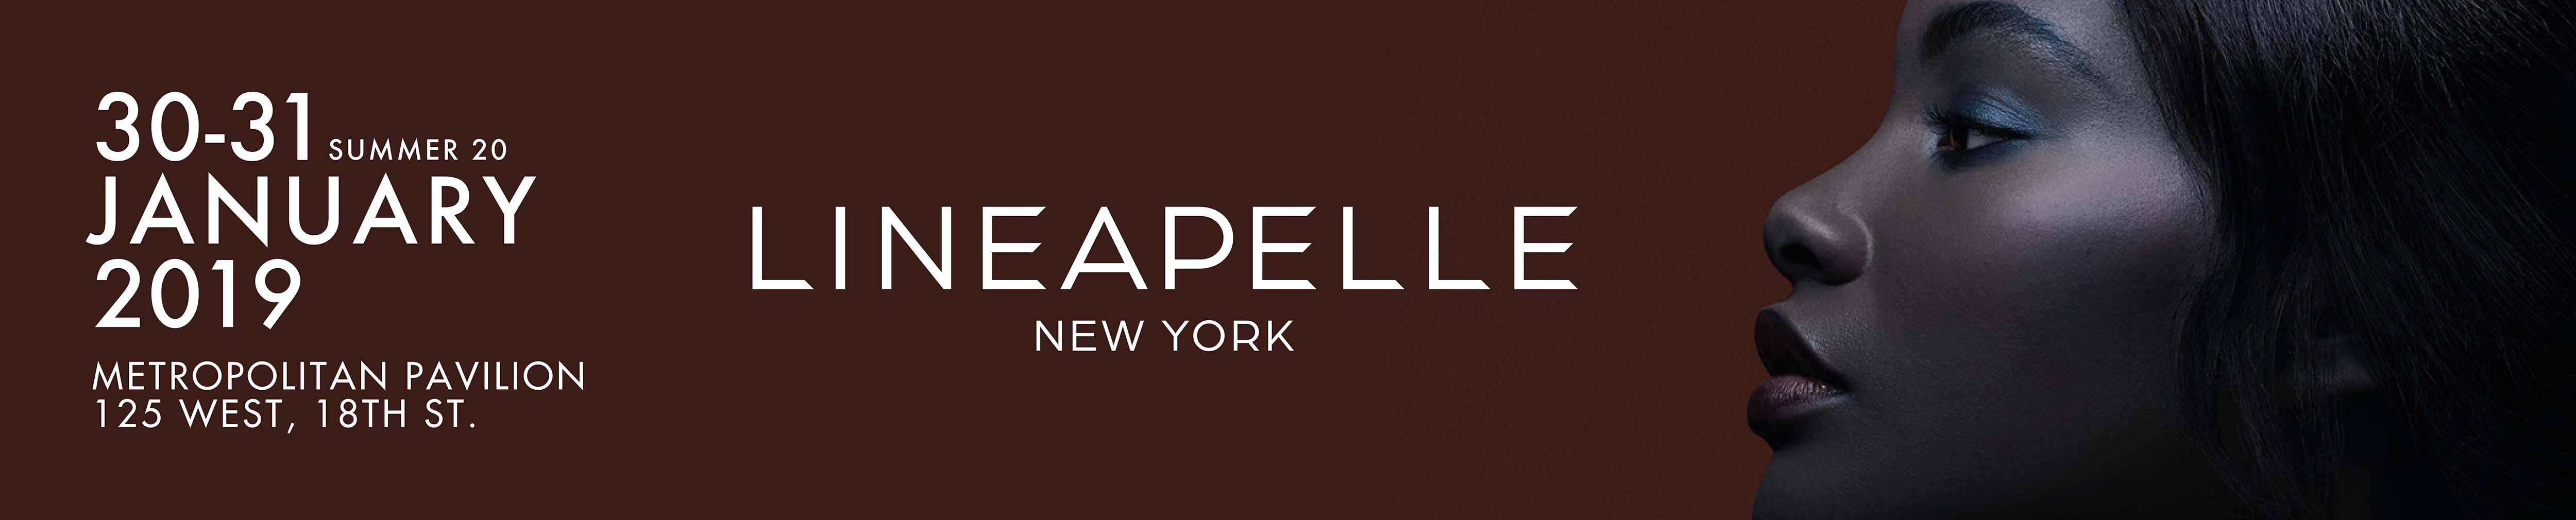 Lineapelle-New-York-2019